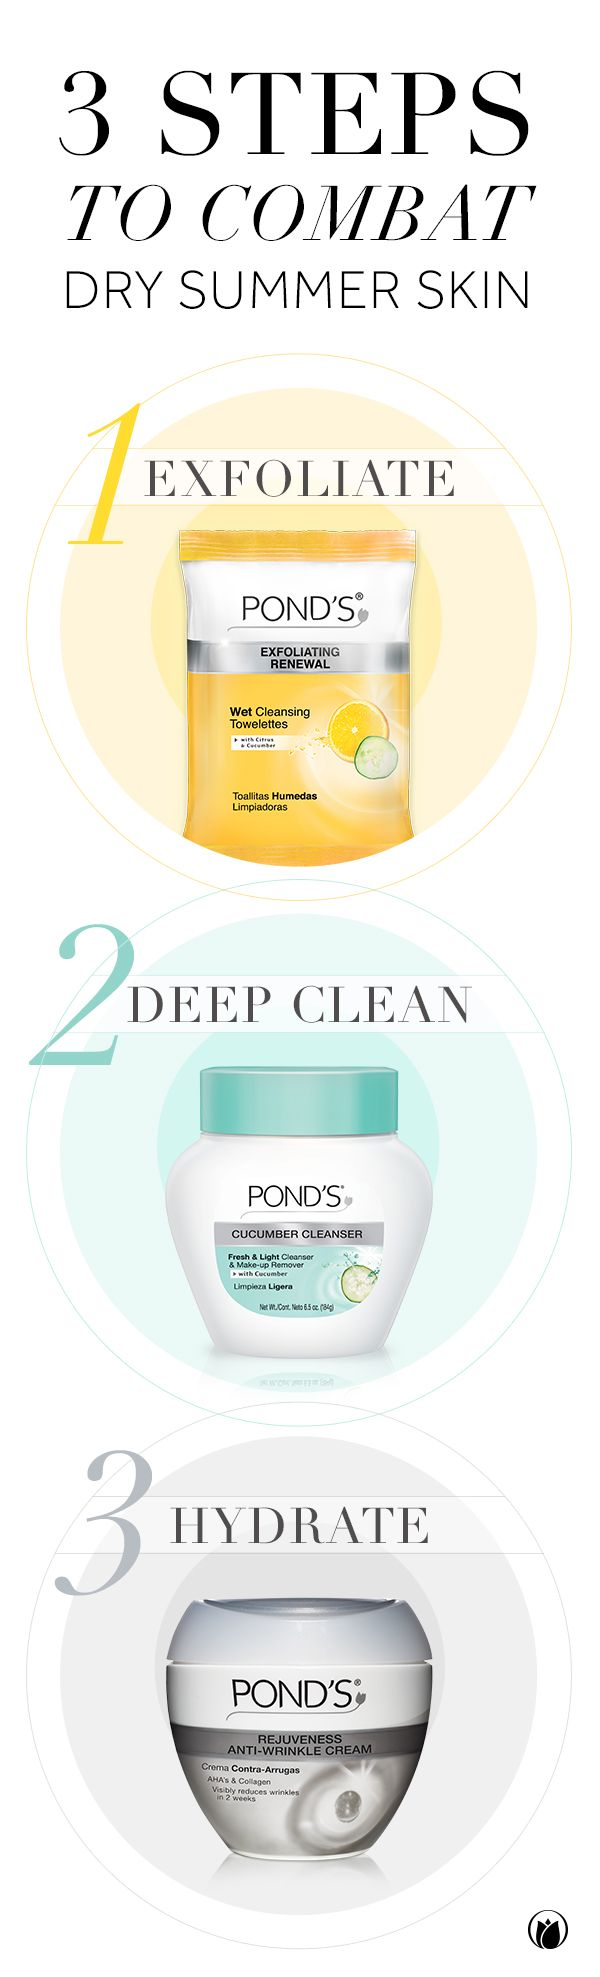 17 Best images about Classic Skincare Secrets on Pinterest ...